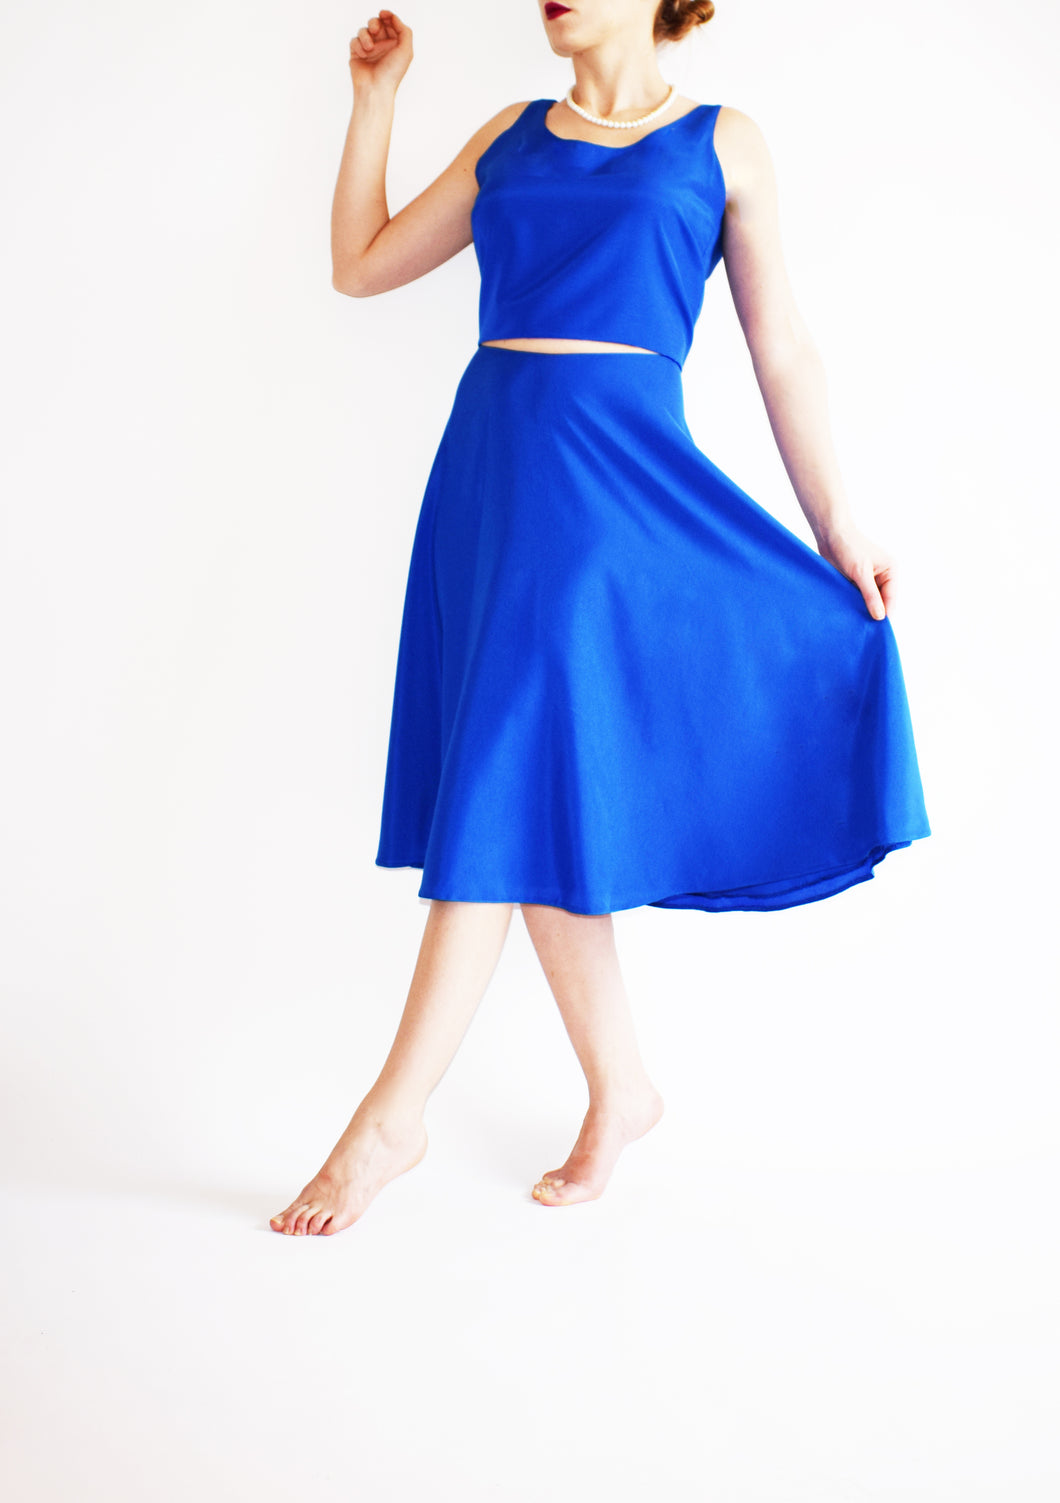 Anahi Royal Blue Skirt - Velmoft